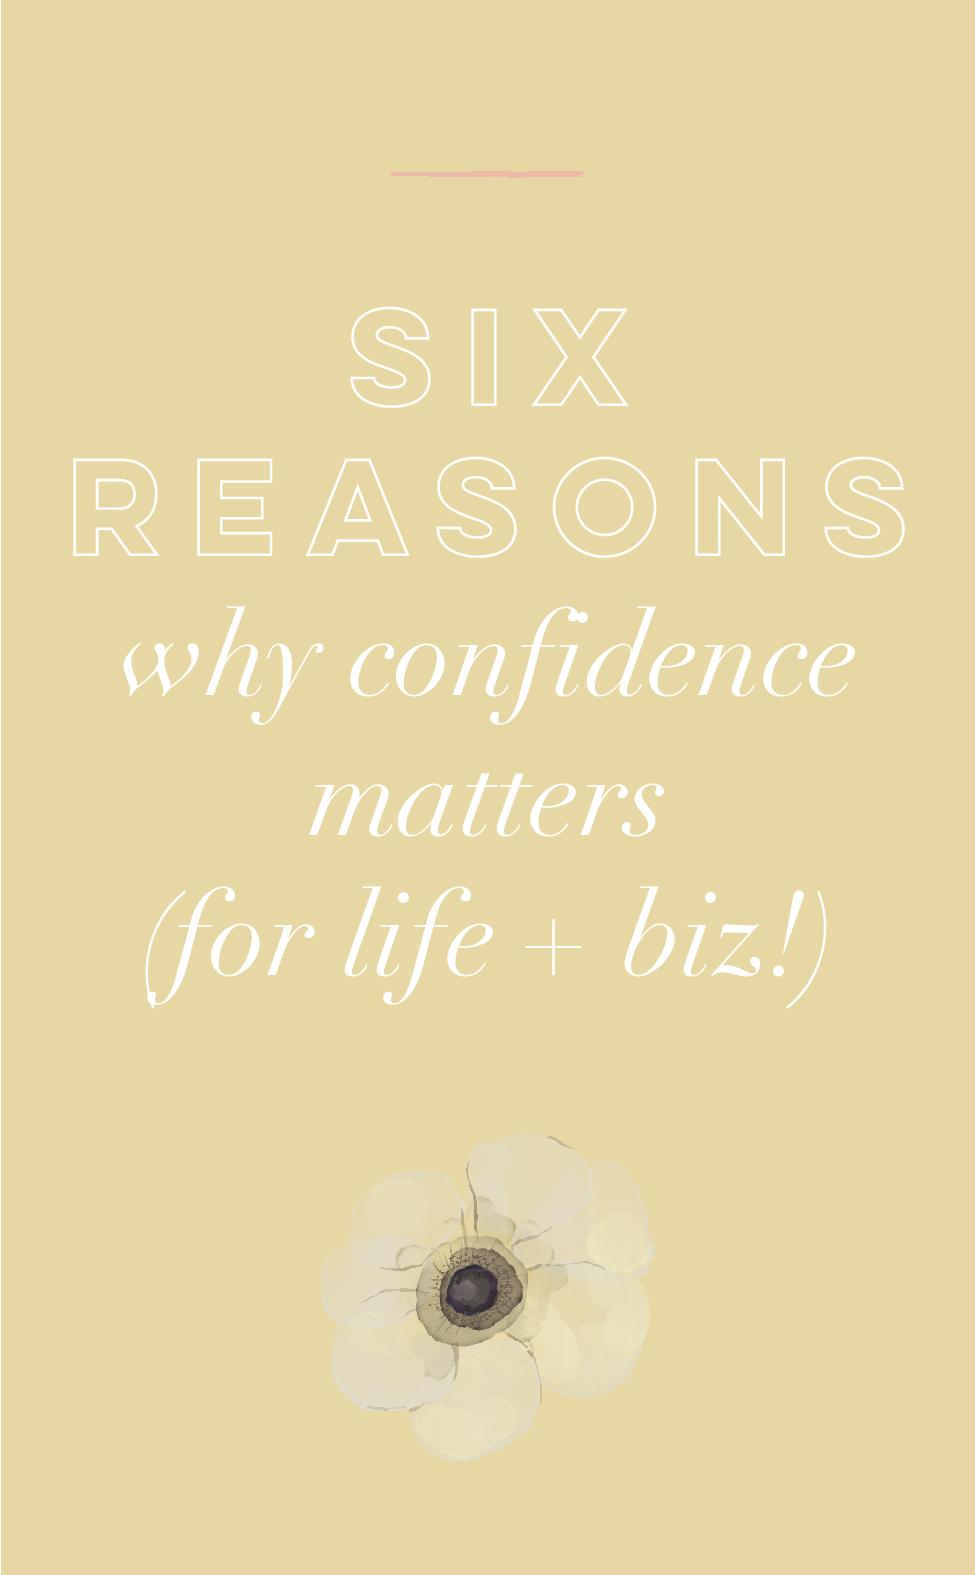 Six Reasons Why Confidence Matters.jpg